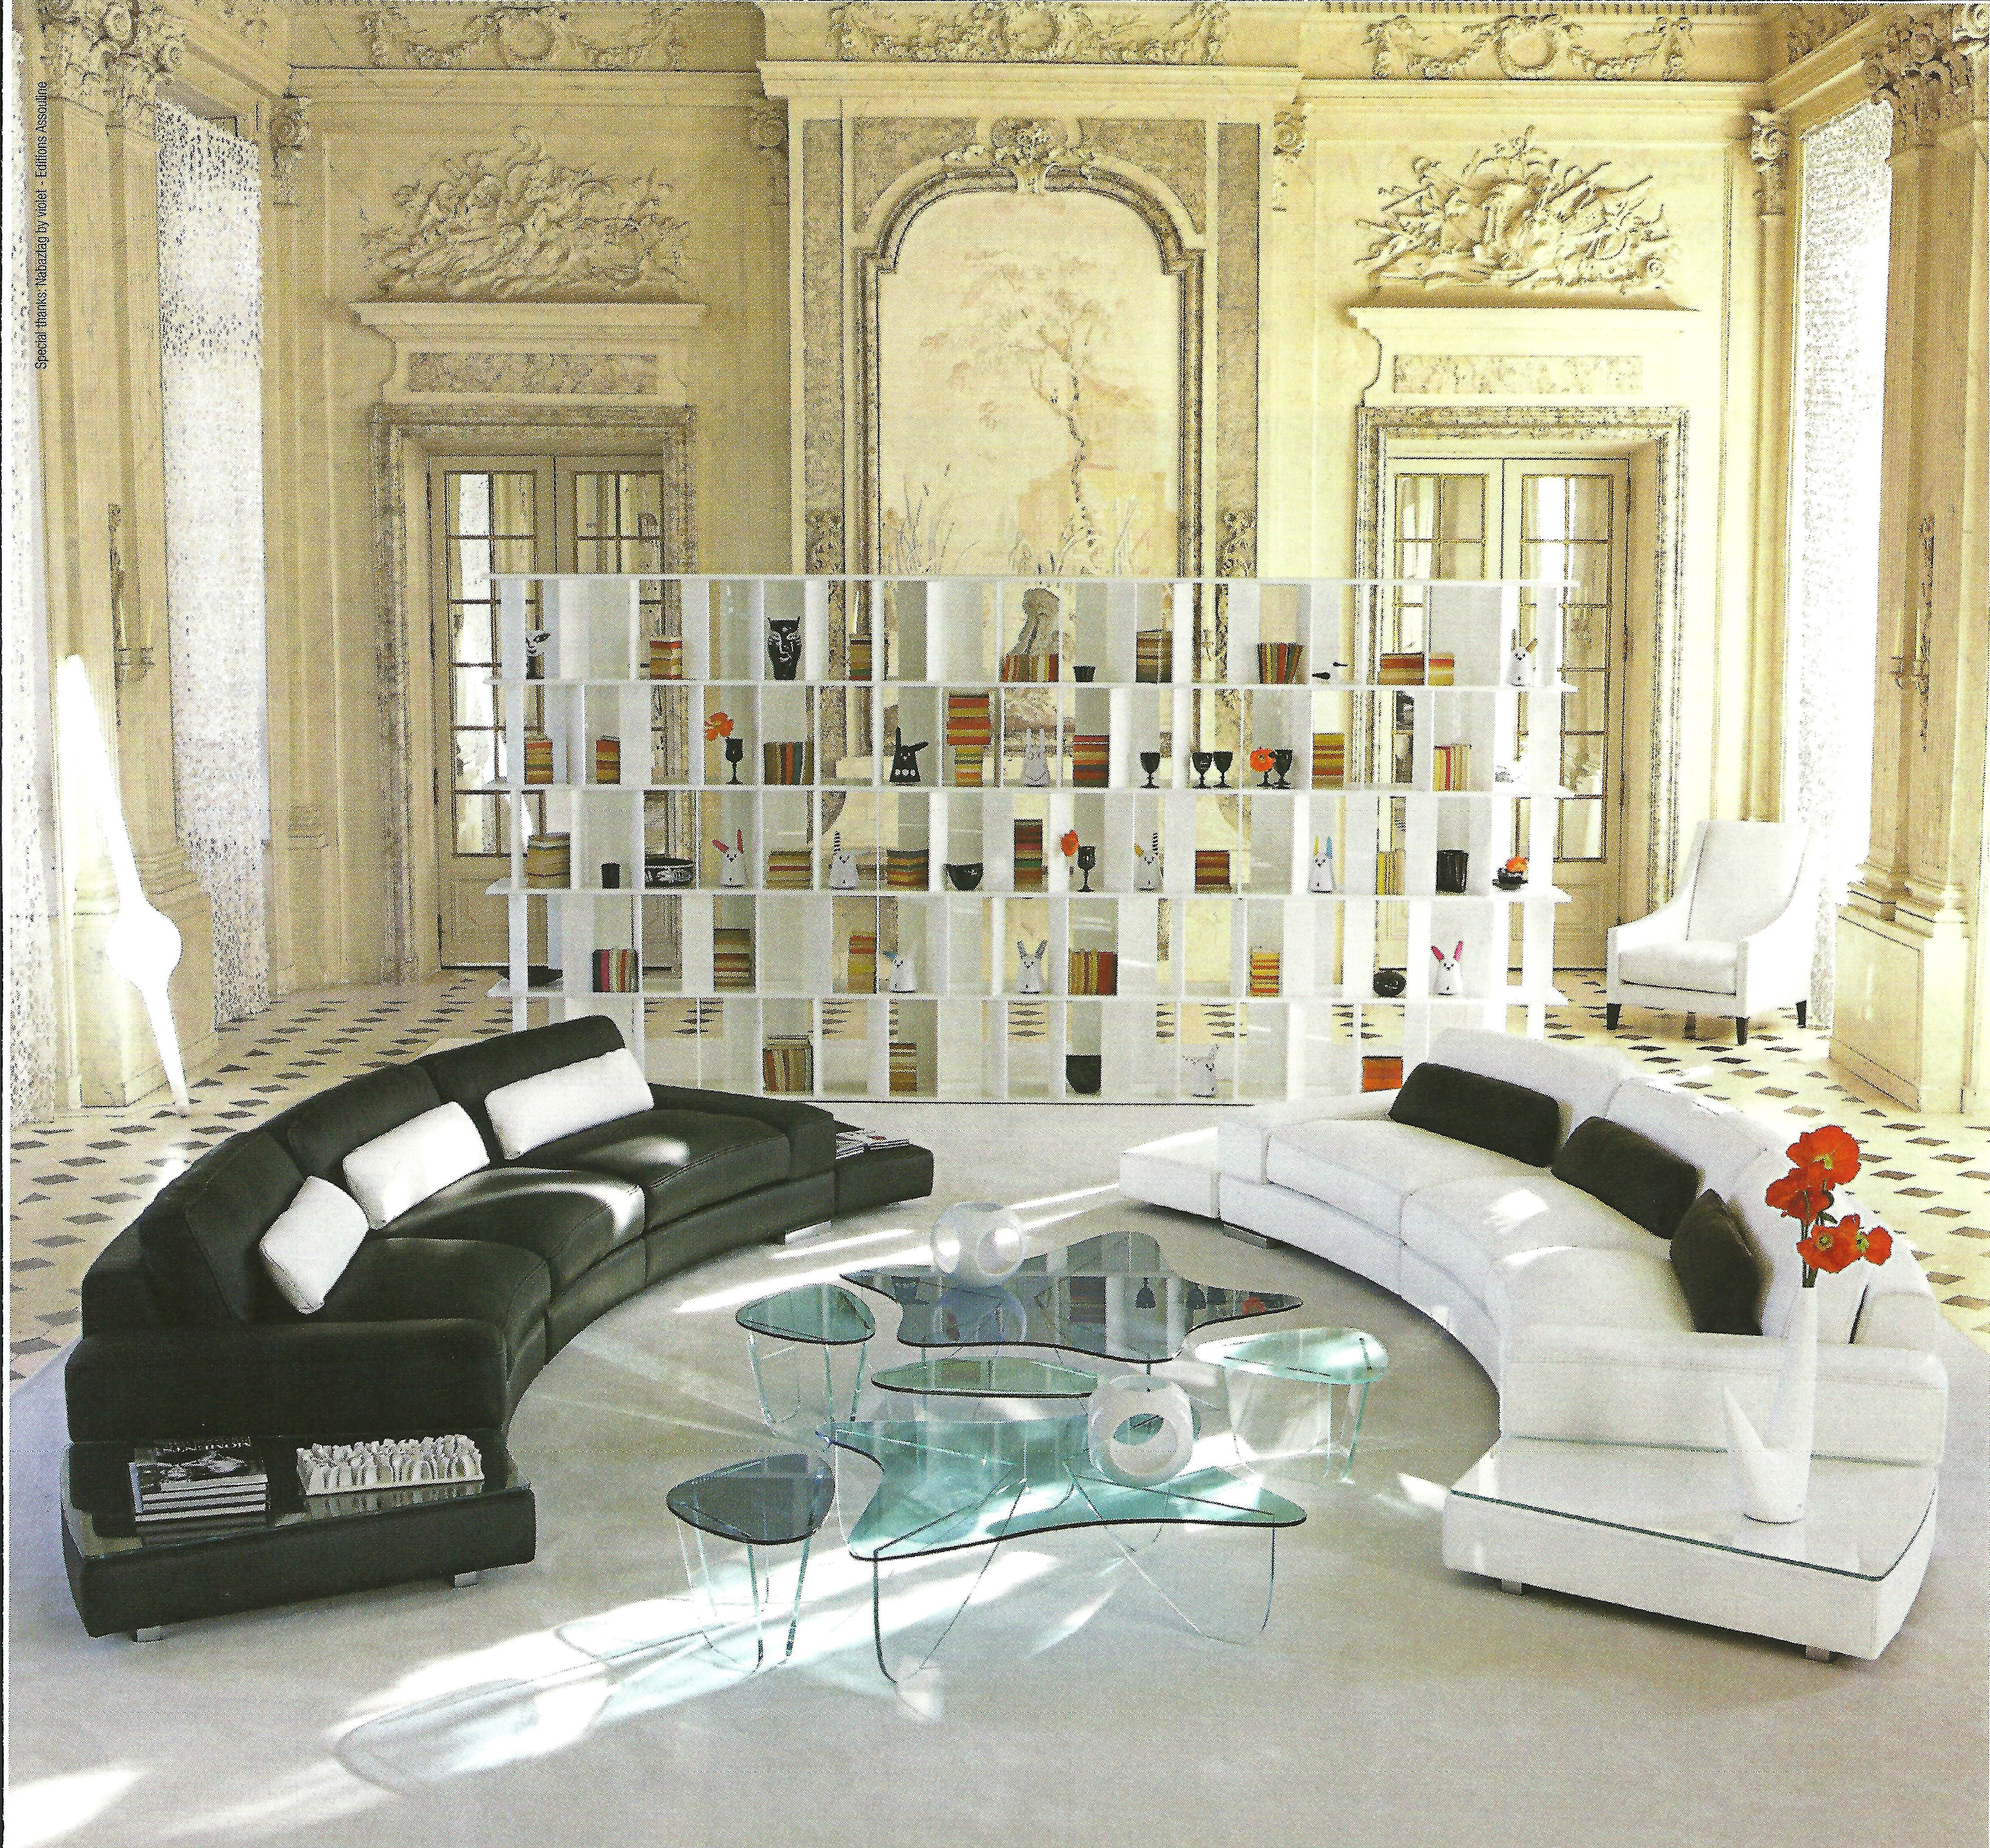 European Interior Design Stark Contemporary Objects In A Classical Architectural Space Ad